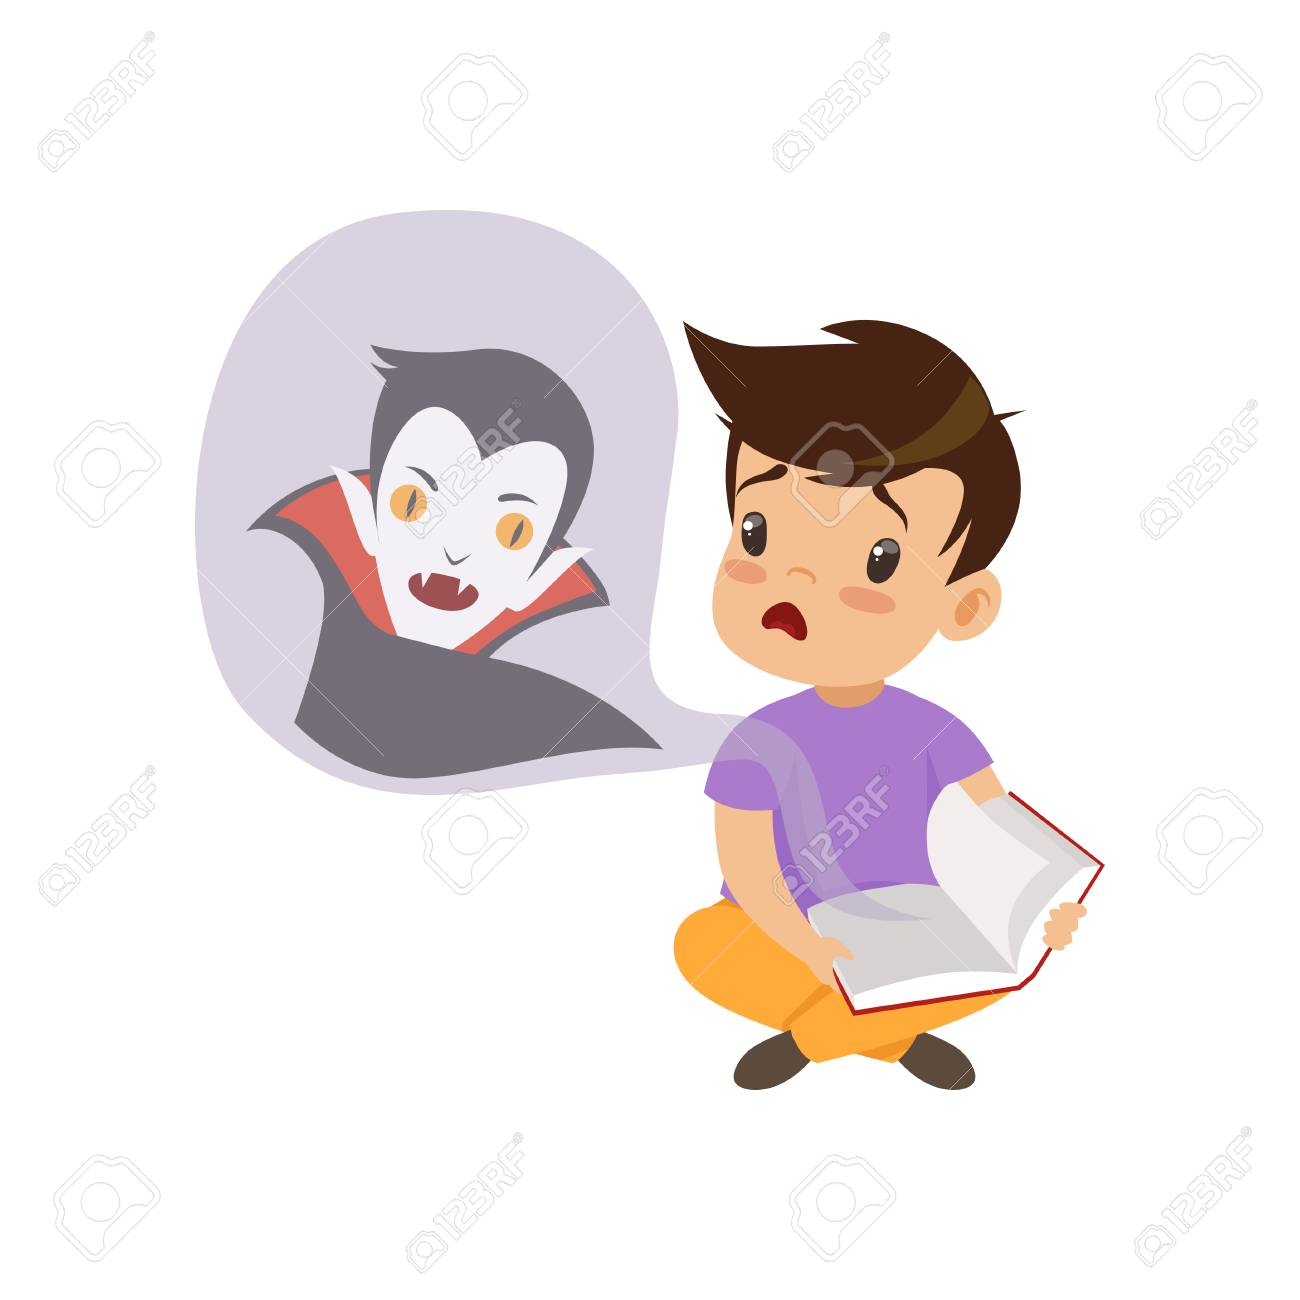 Cute little boy reading a scary book about vampires, kids fabulous imagination concept vector Illustration isolated on a white background. - 128163048